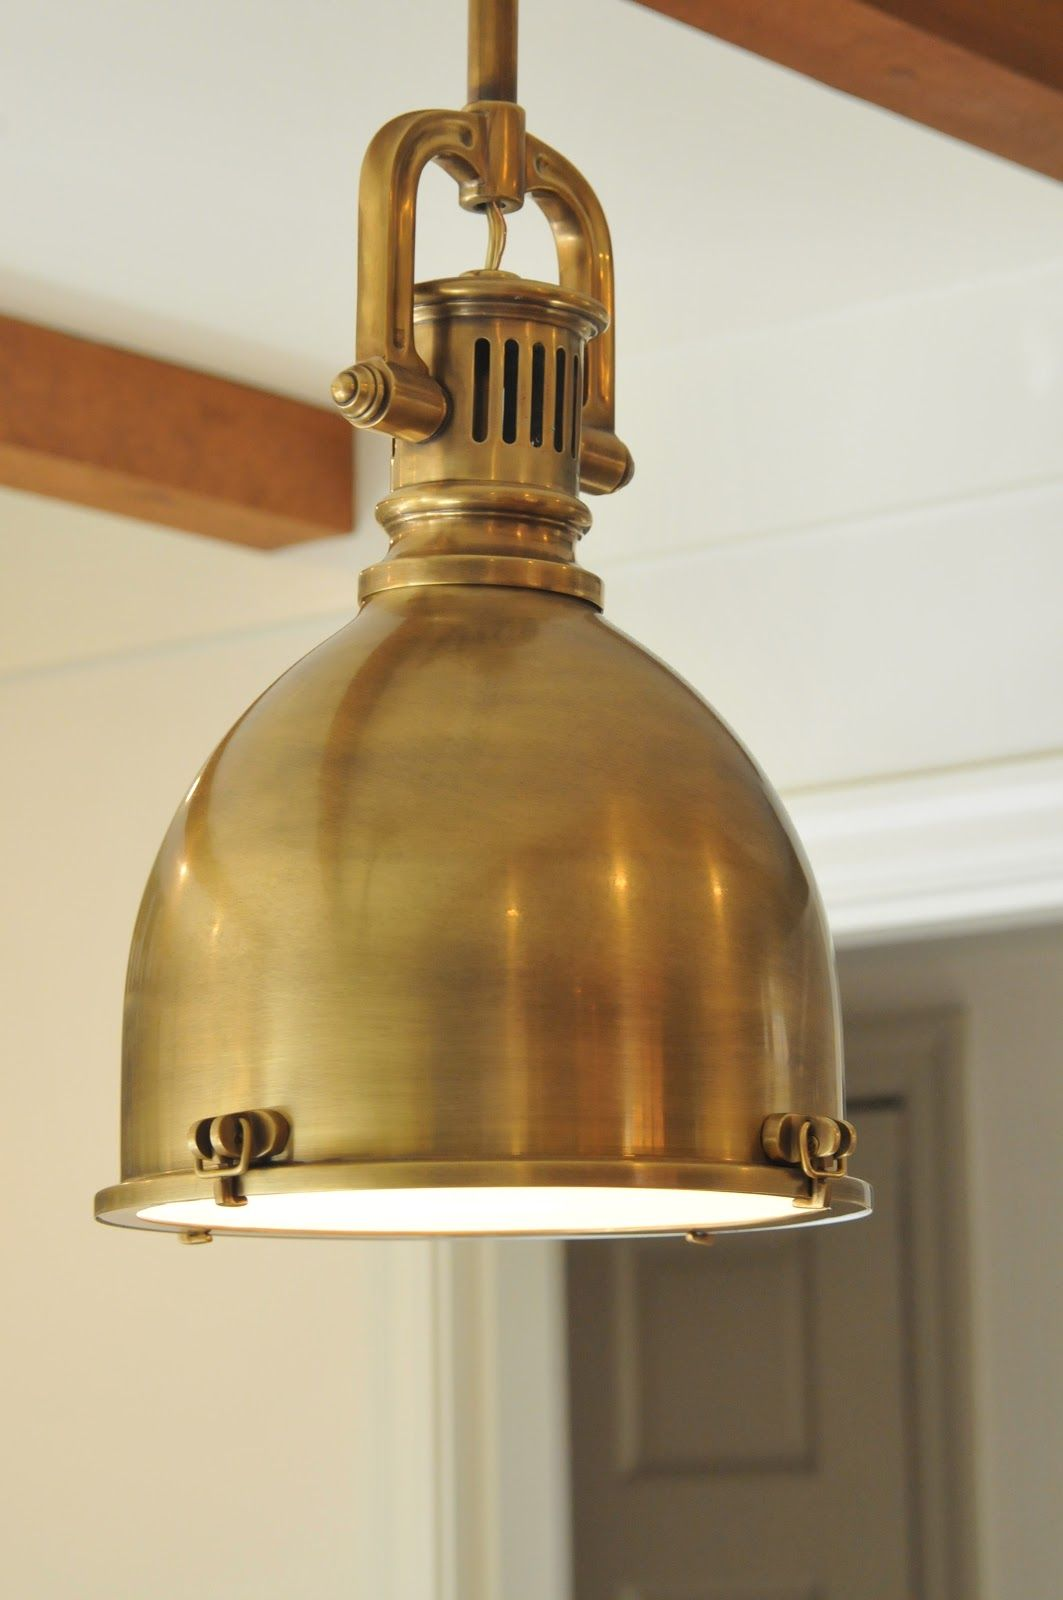 Brass lighting fixtures Polished Brass Nine Sixteen Want Brass Lighting For The Kitchen Pinterest Nine Sixteen Want Brass Lighting For The Kitchen Kitchy